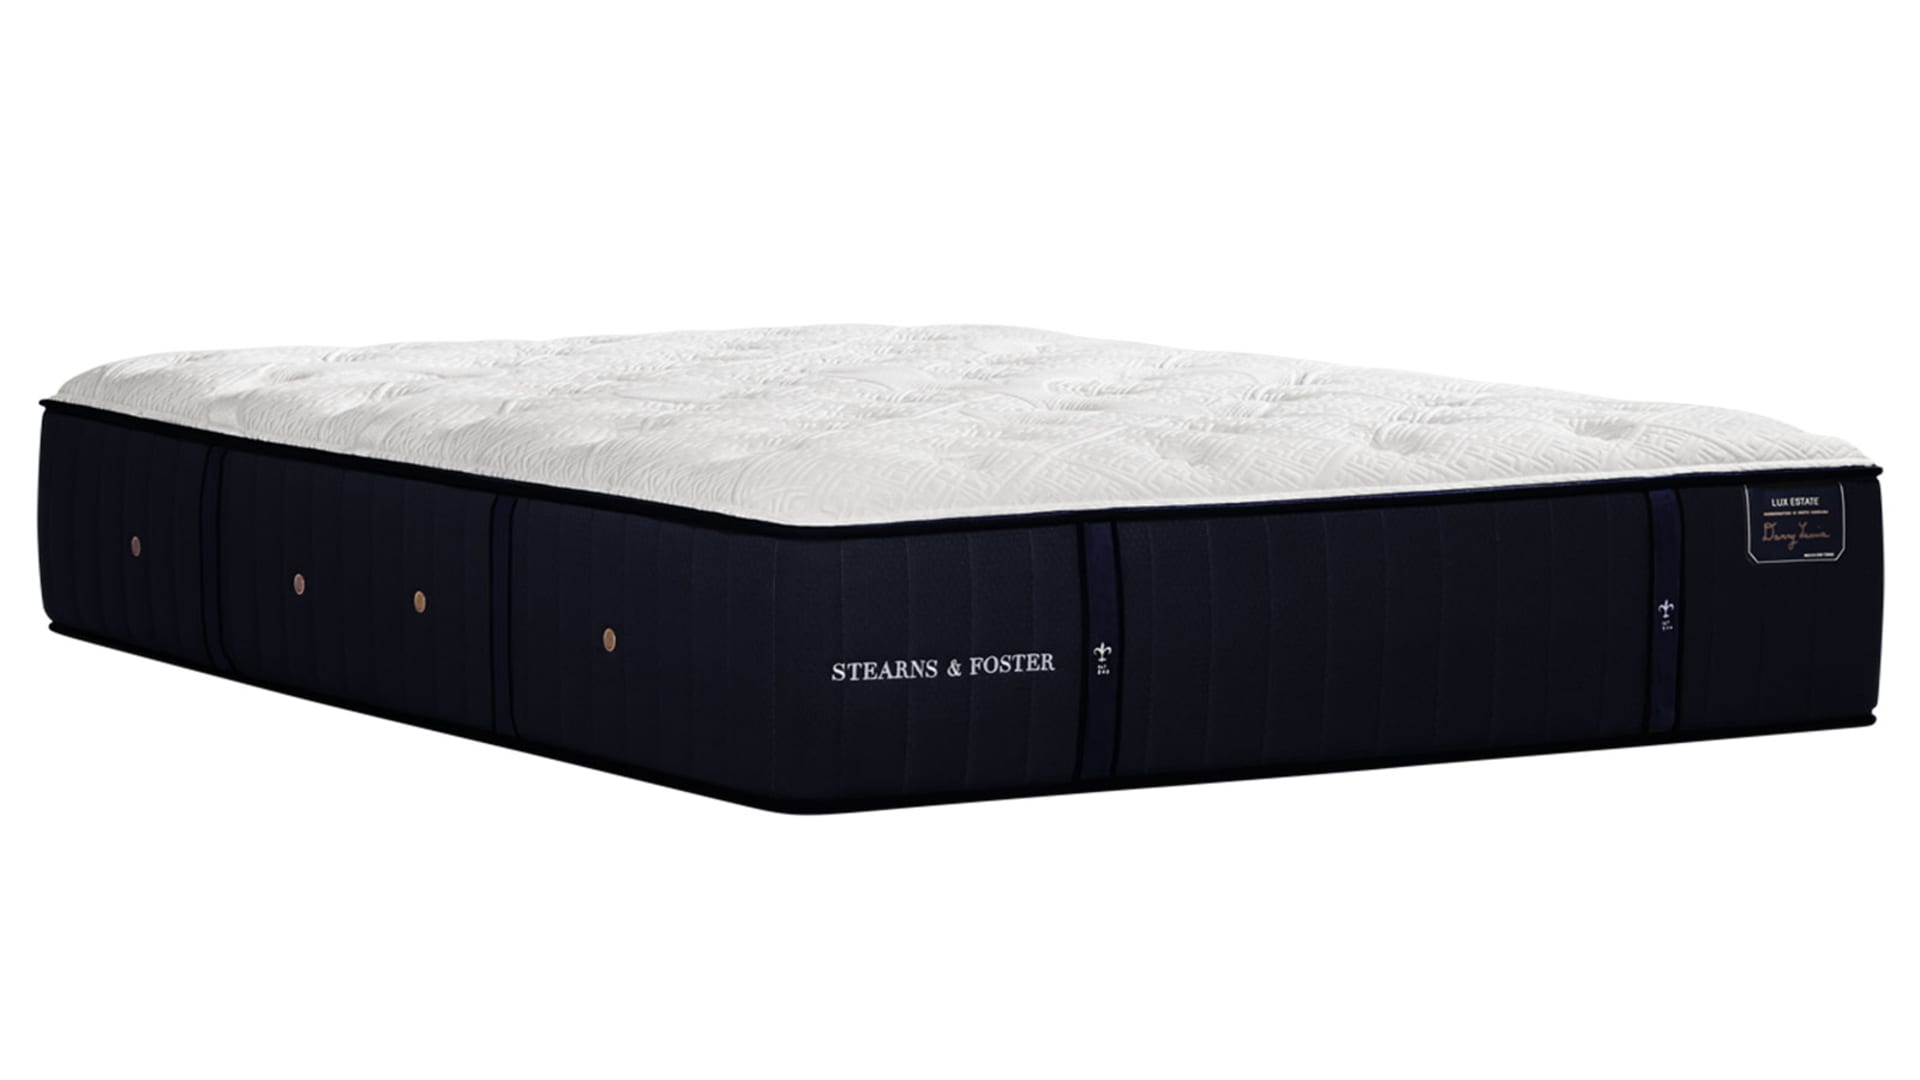 Queen Size S&F CASSATT LUX FIRM Mattress